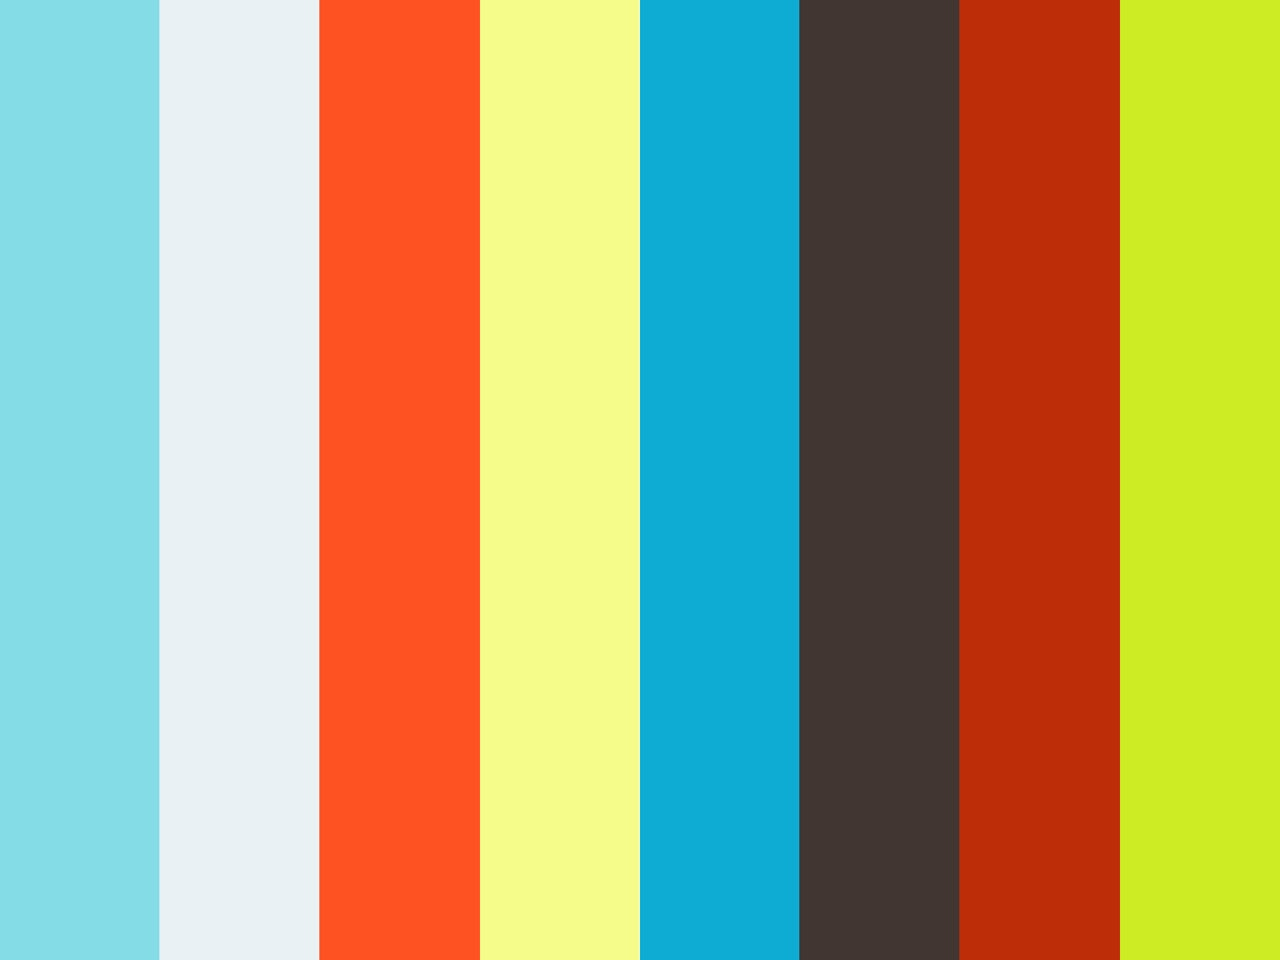 Bodum Bistro Mug Press Personal Coffee and Tea Maker on Vimeo